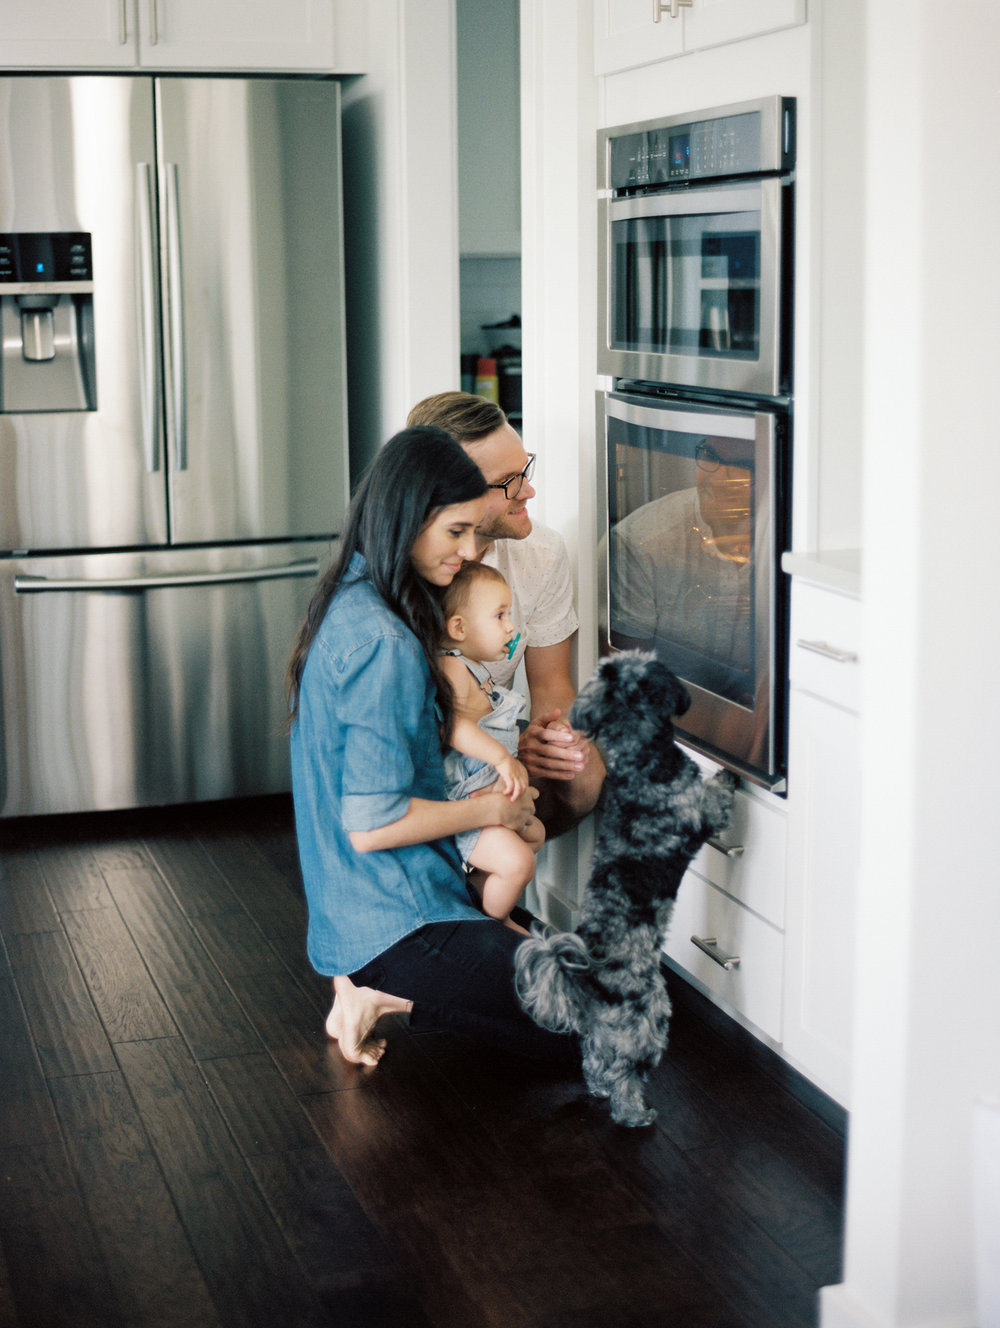 Lynchburg_DC_family_wedding_film_photographer_white_kitchen_baby_announcement-32.jpg